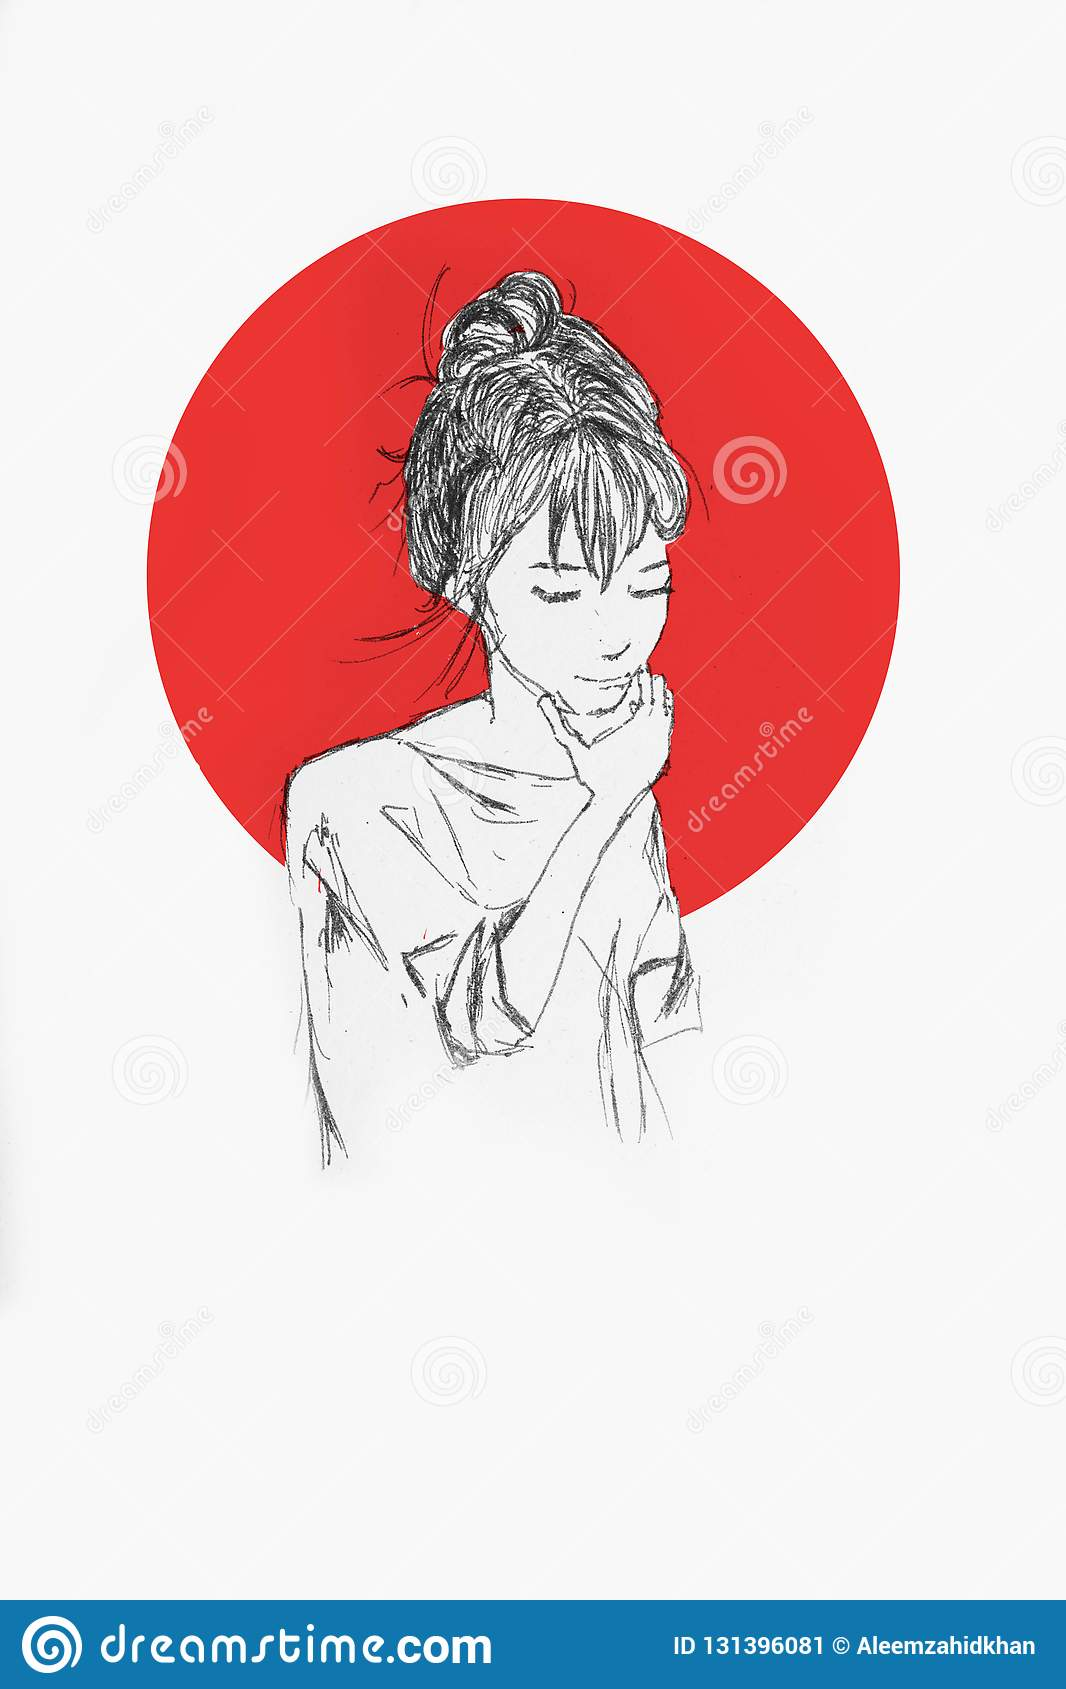 Hand drawn beautiful girl portrait pencil sketch of an anime girl with red circle on the background